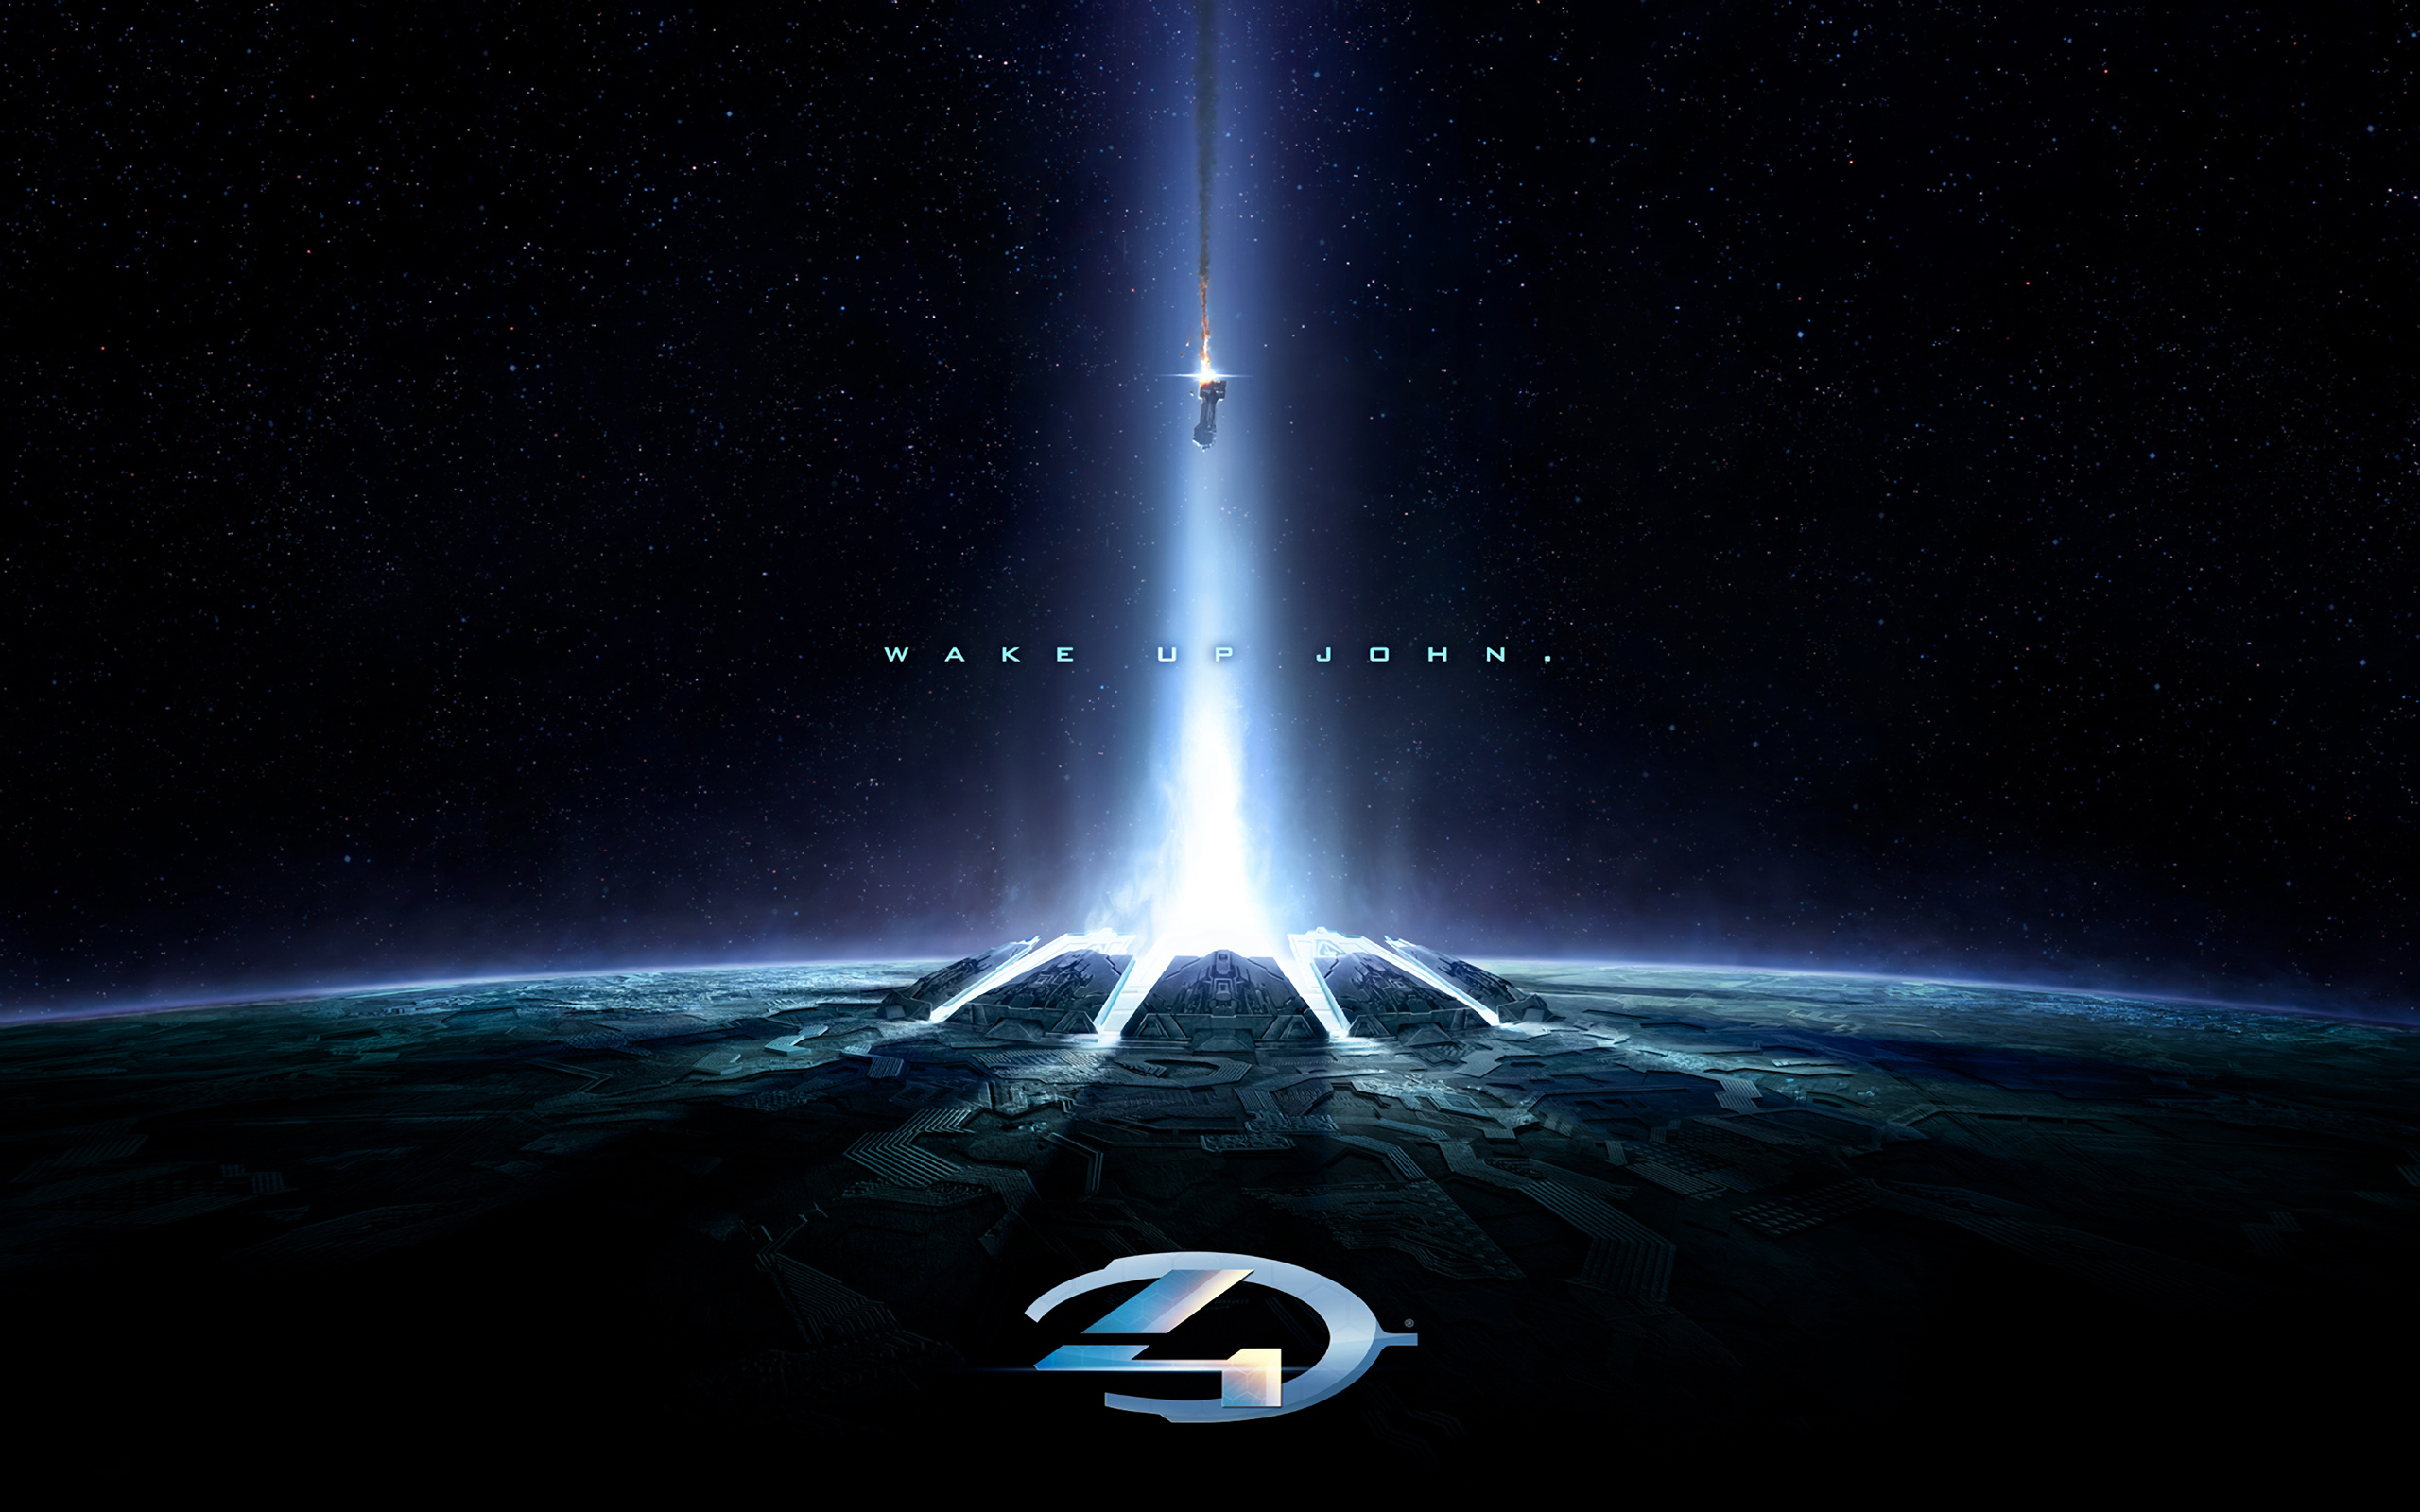 Halo 4 2012 Exclusive HD Wallpapers 2969 2560x1600